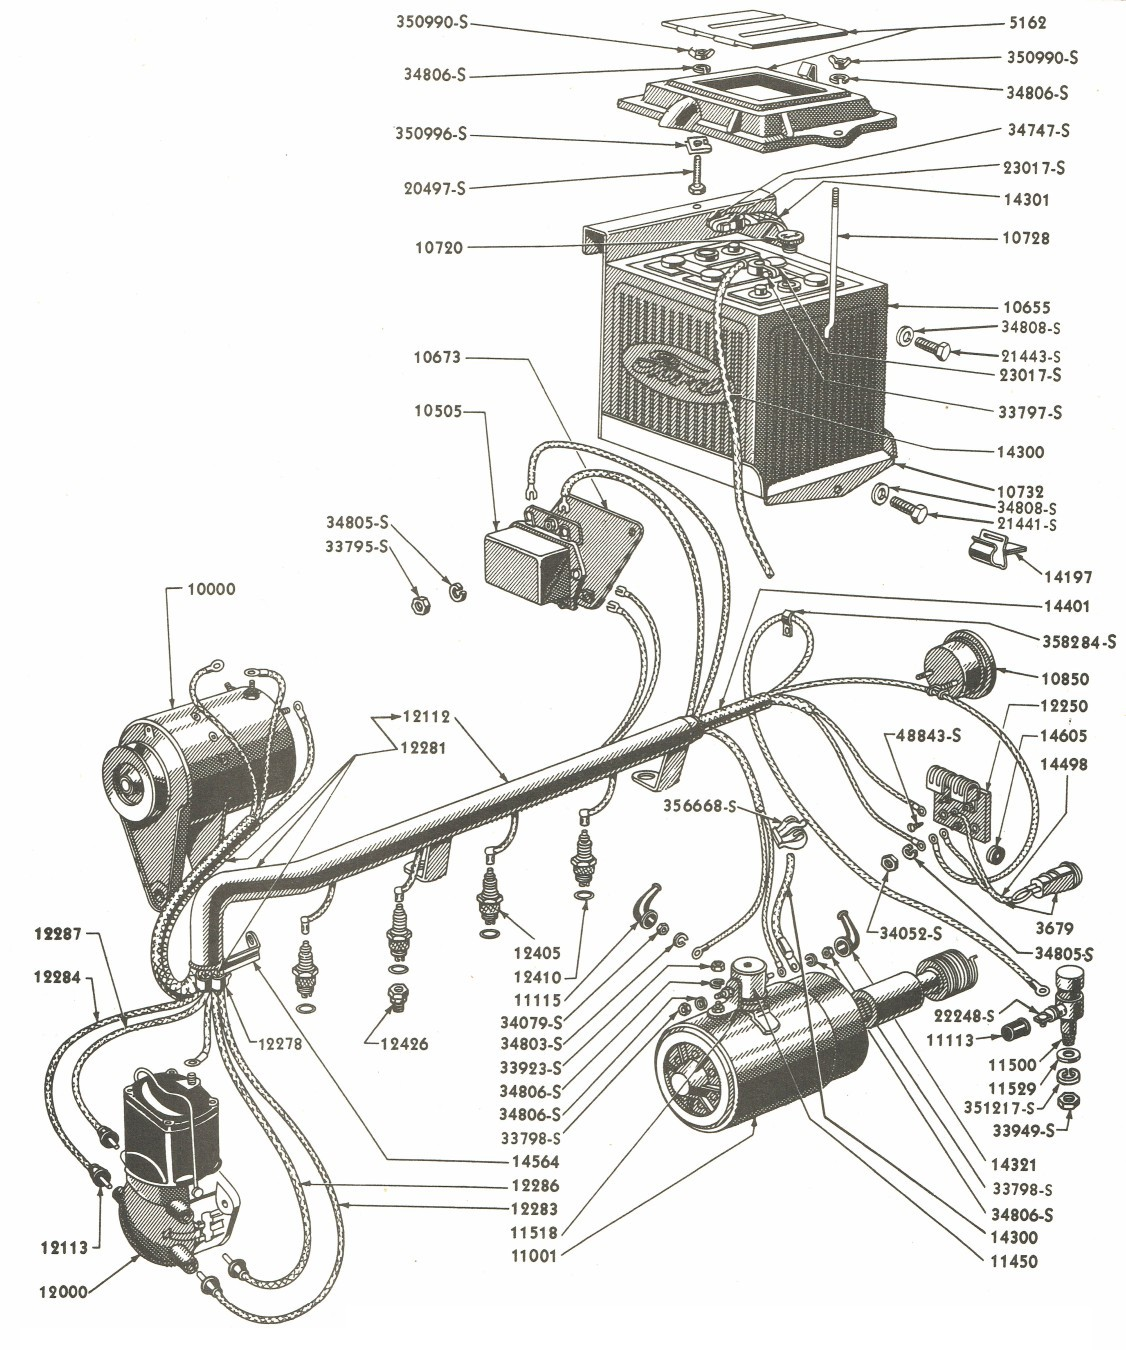 6 Volt Tractor Wiring Diagram - Wiring Diagram Data Schema C Volt N Ford Tractor Wiring Diagram on 12 volt ford 9n wiring diagram, ford 4000 tractor electrical diagram, ford 8n alternator conversion diagram, international farmall cub tractor wiring diagram, 12 volt coil wiring diagram, ford 8n 6 volt wiring diagram, ford 2000 tractor parts diagram, 12 volt tractor alternator wiring diagram, john deere b tractor wiring diagram, 12 volt led light wiring diagram, 12 volt battery to 24 volt diagram, 12 volt wiring harness, 8n ford tractor engine diagram, 8n 12 volt conversion diagram, 12 volt 4 pin relay wiring diagrams, 12 volt conversion wiring diagram, power king tractor wiring diagram, 12 volt battery isolator wiring-diagram, oliver 550 tractor wiring diagram, case tractor wiring diagram,